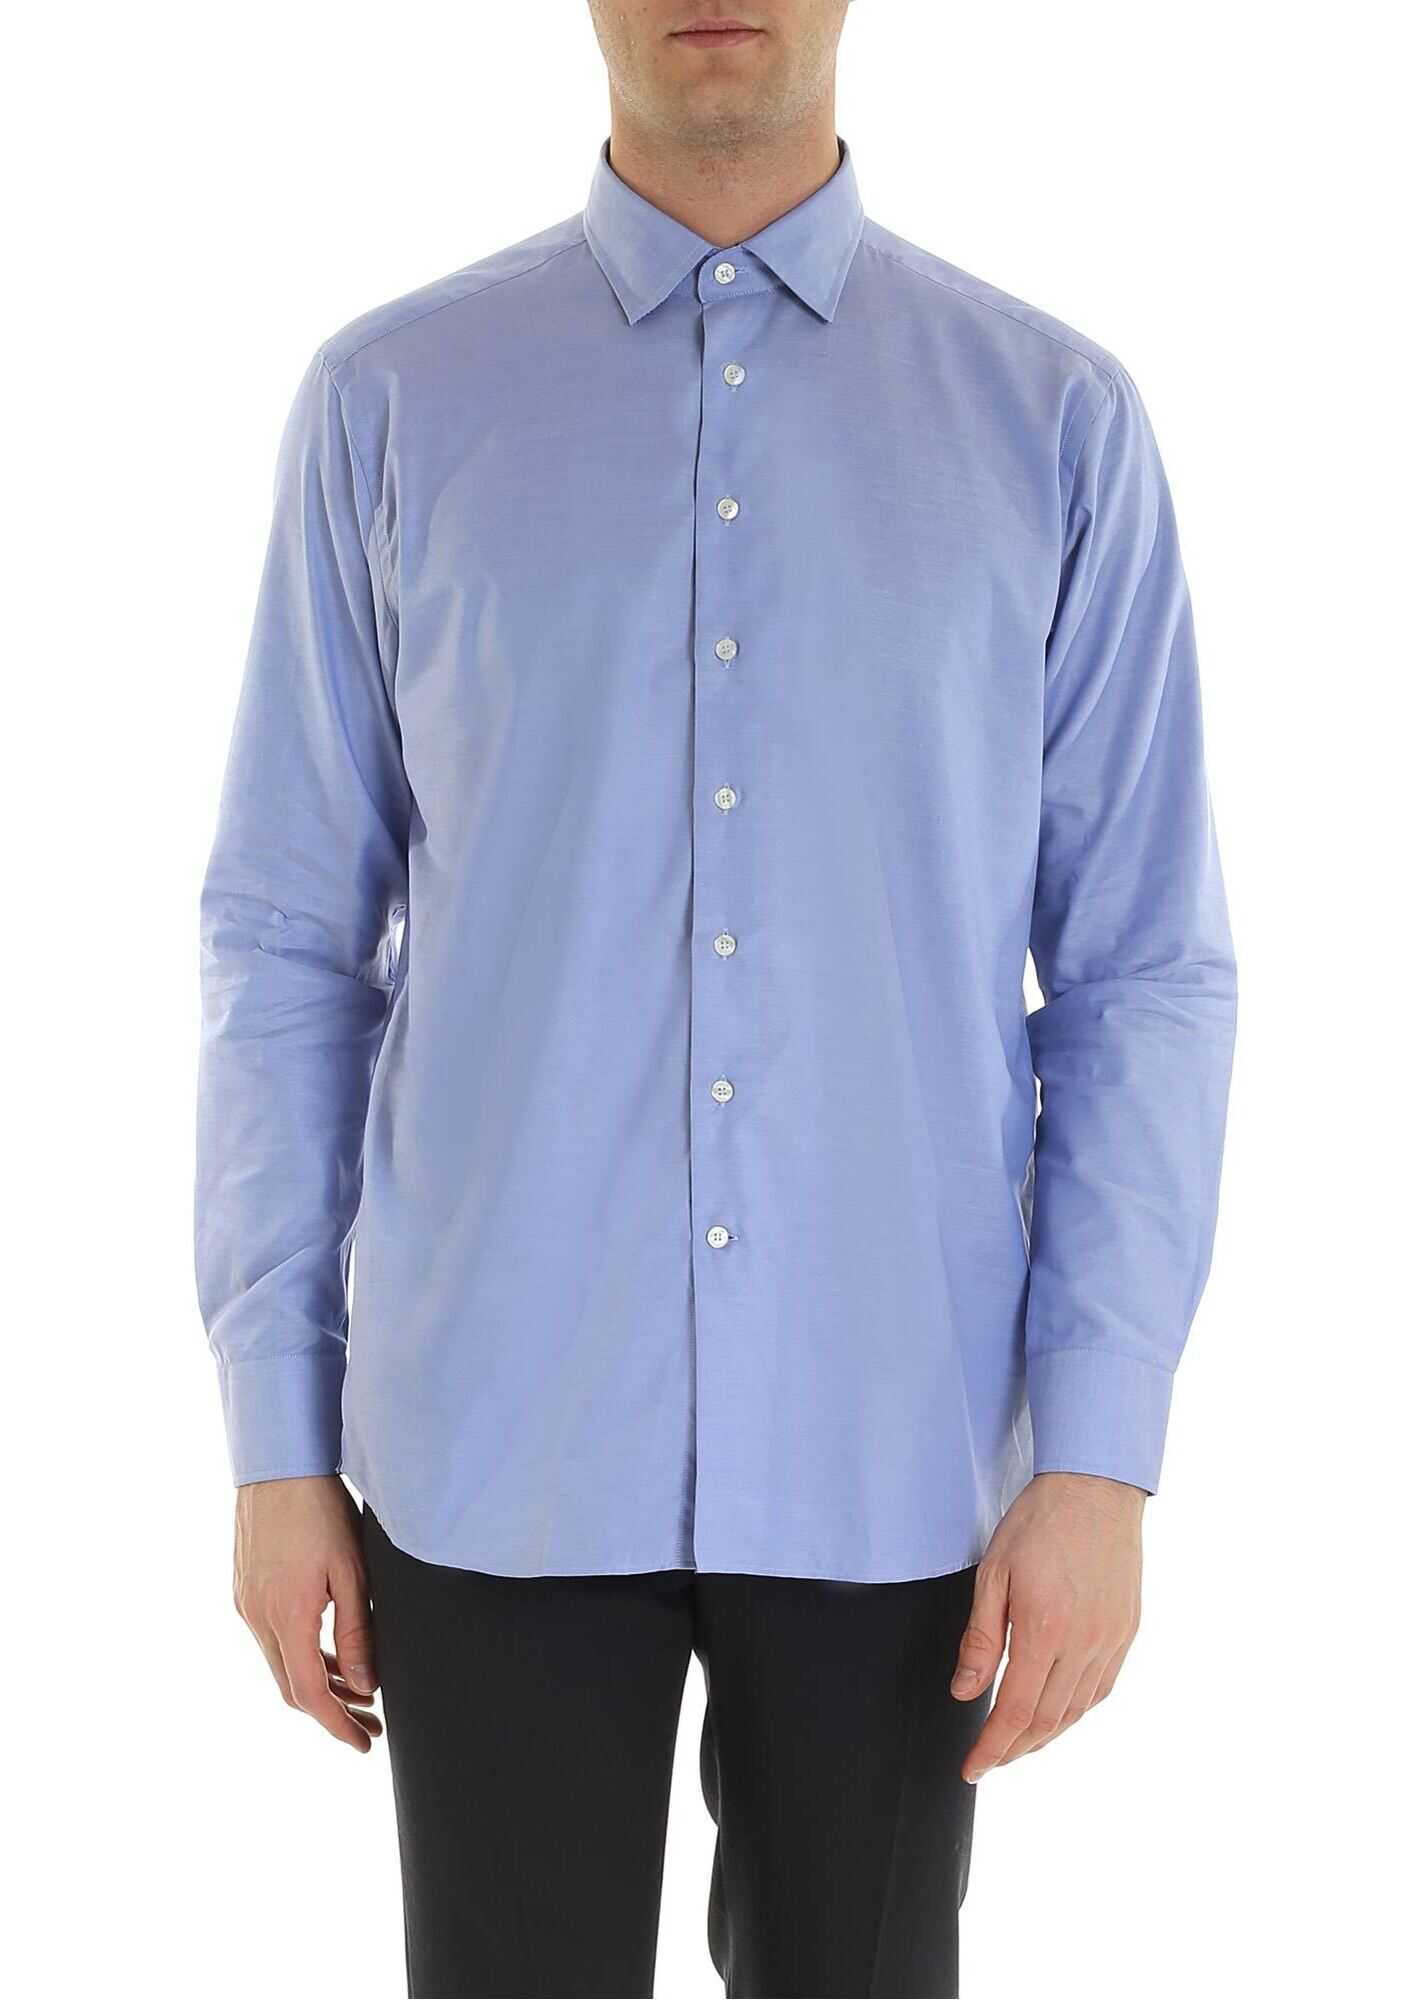 ETRO Oxford Shirt In Light Blue Color thumbnail